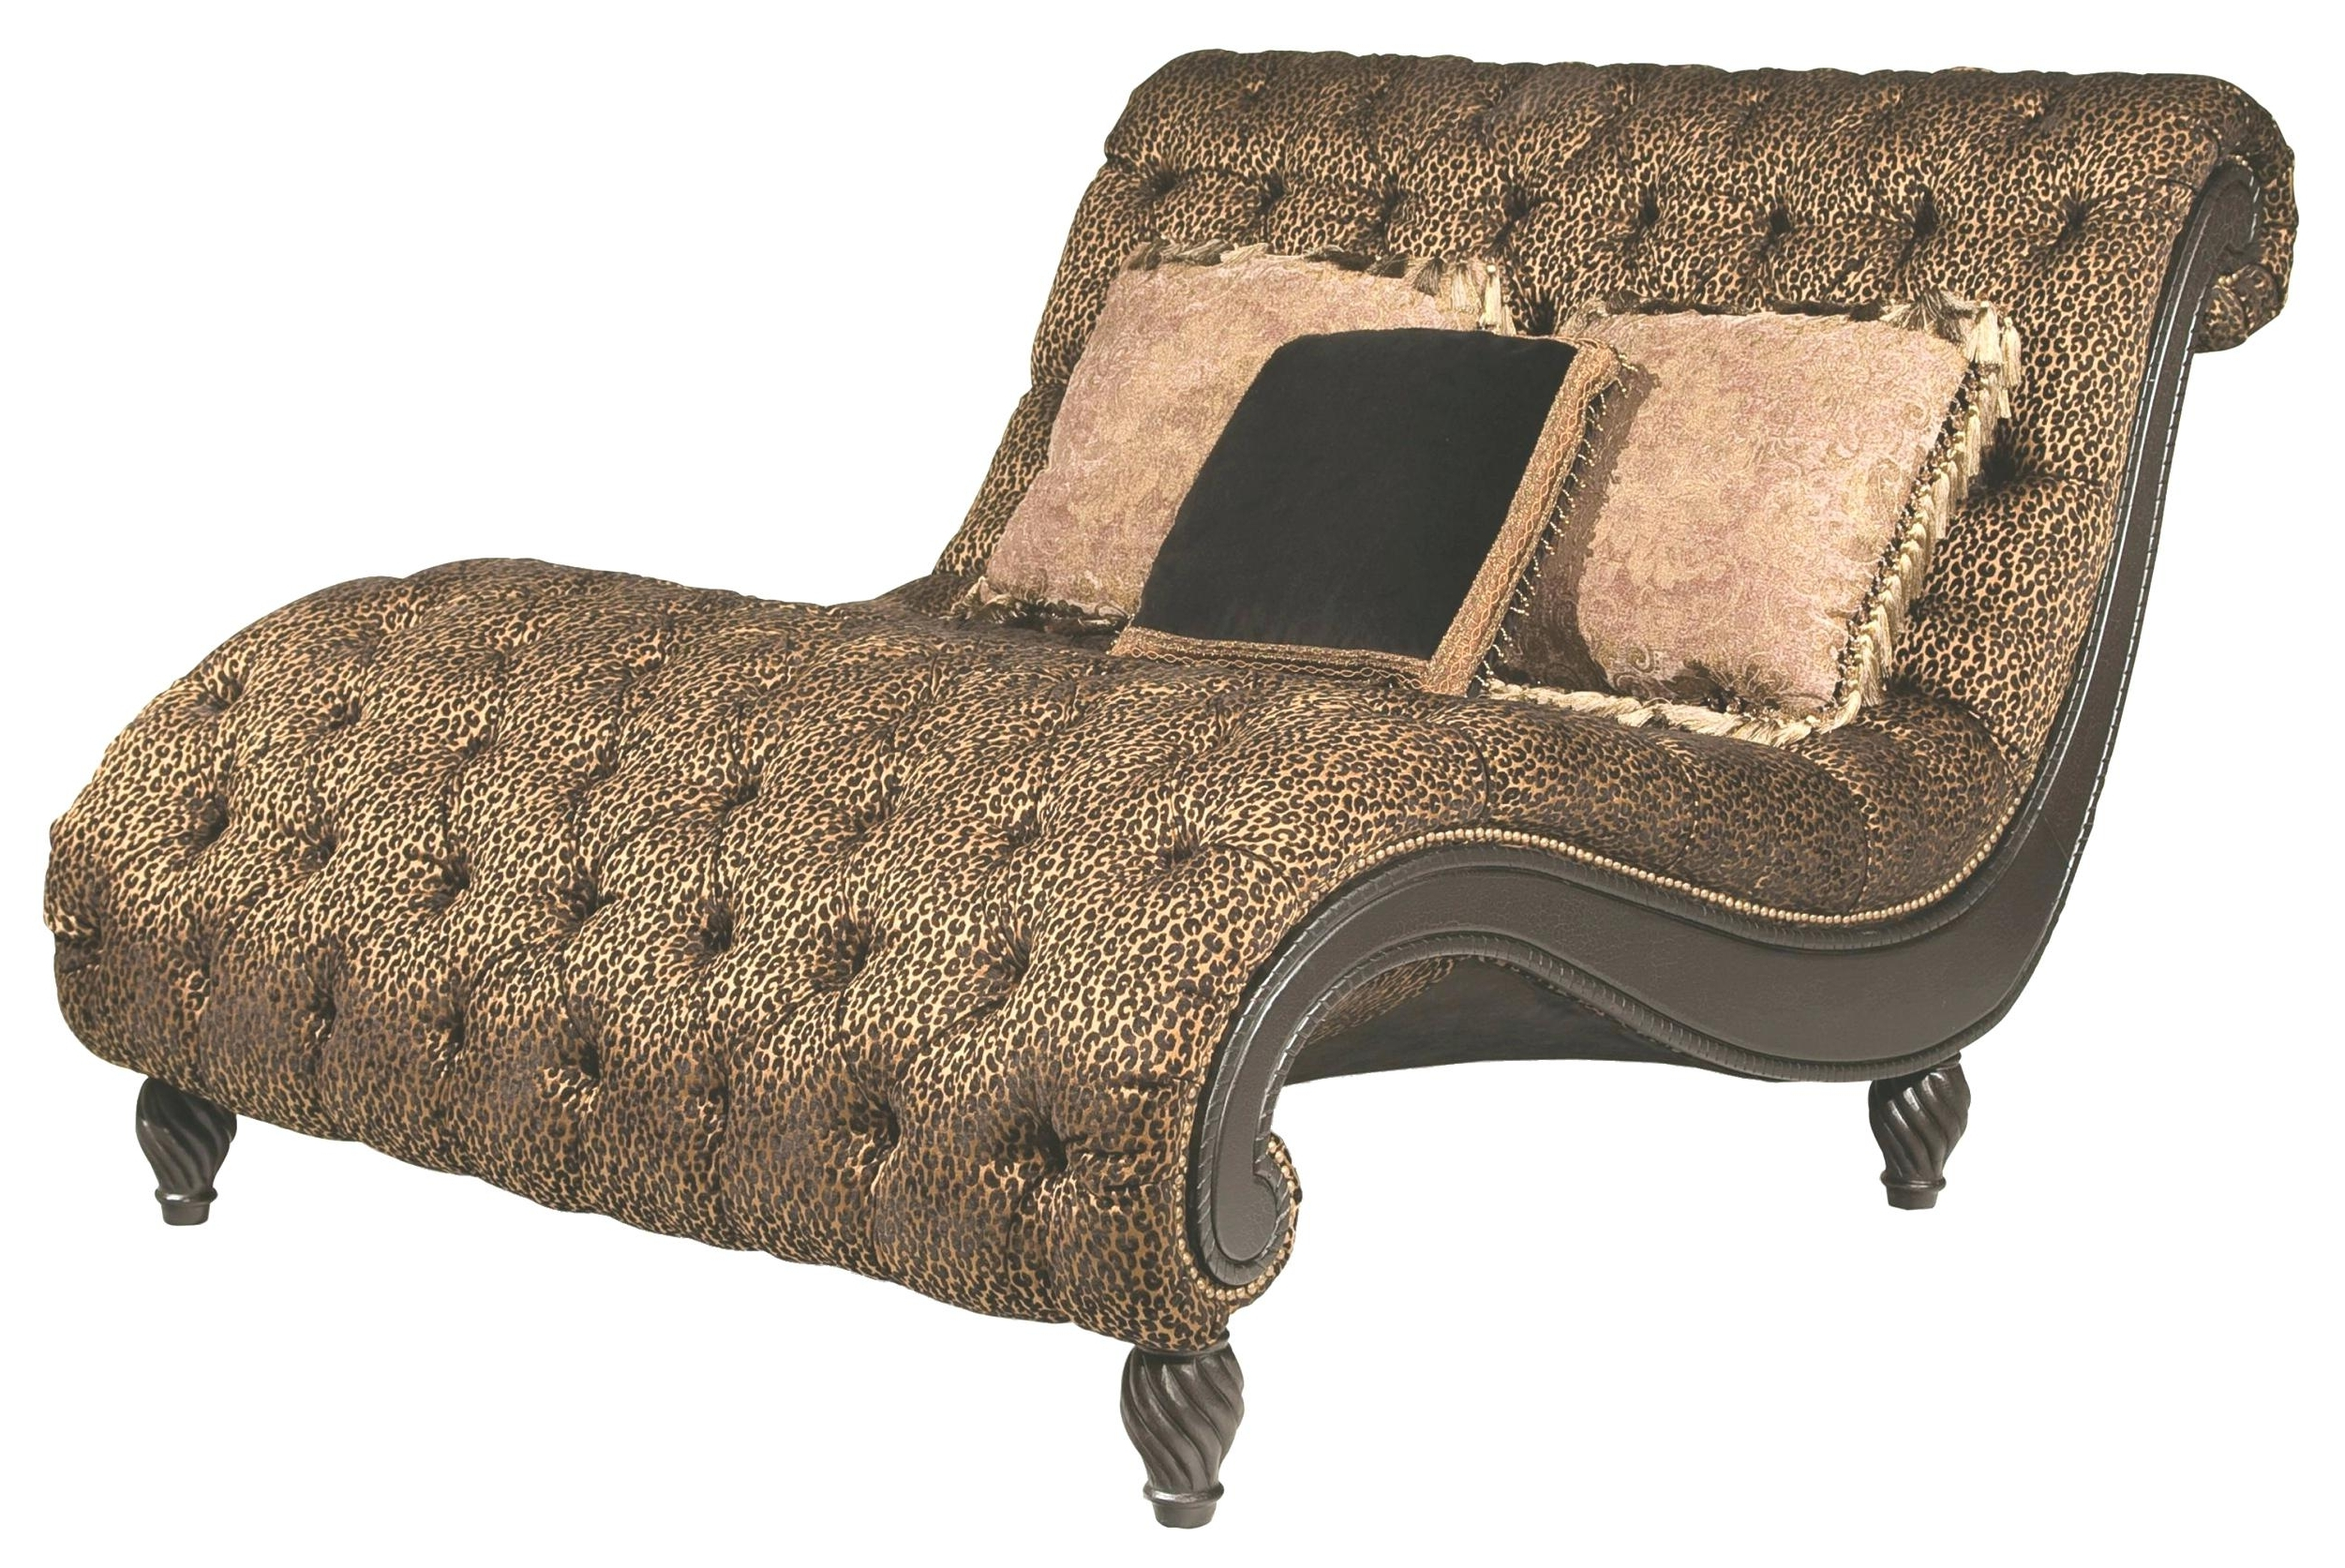 Leopard Chaise Lounges Inside Current Leopard Print Chaise Lounge Chair • Lounge Chairs Ideas (View 9 of 15)